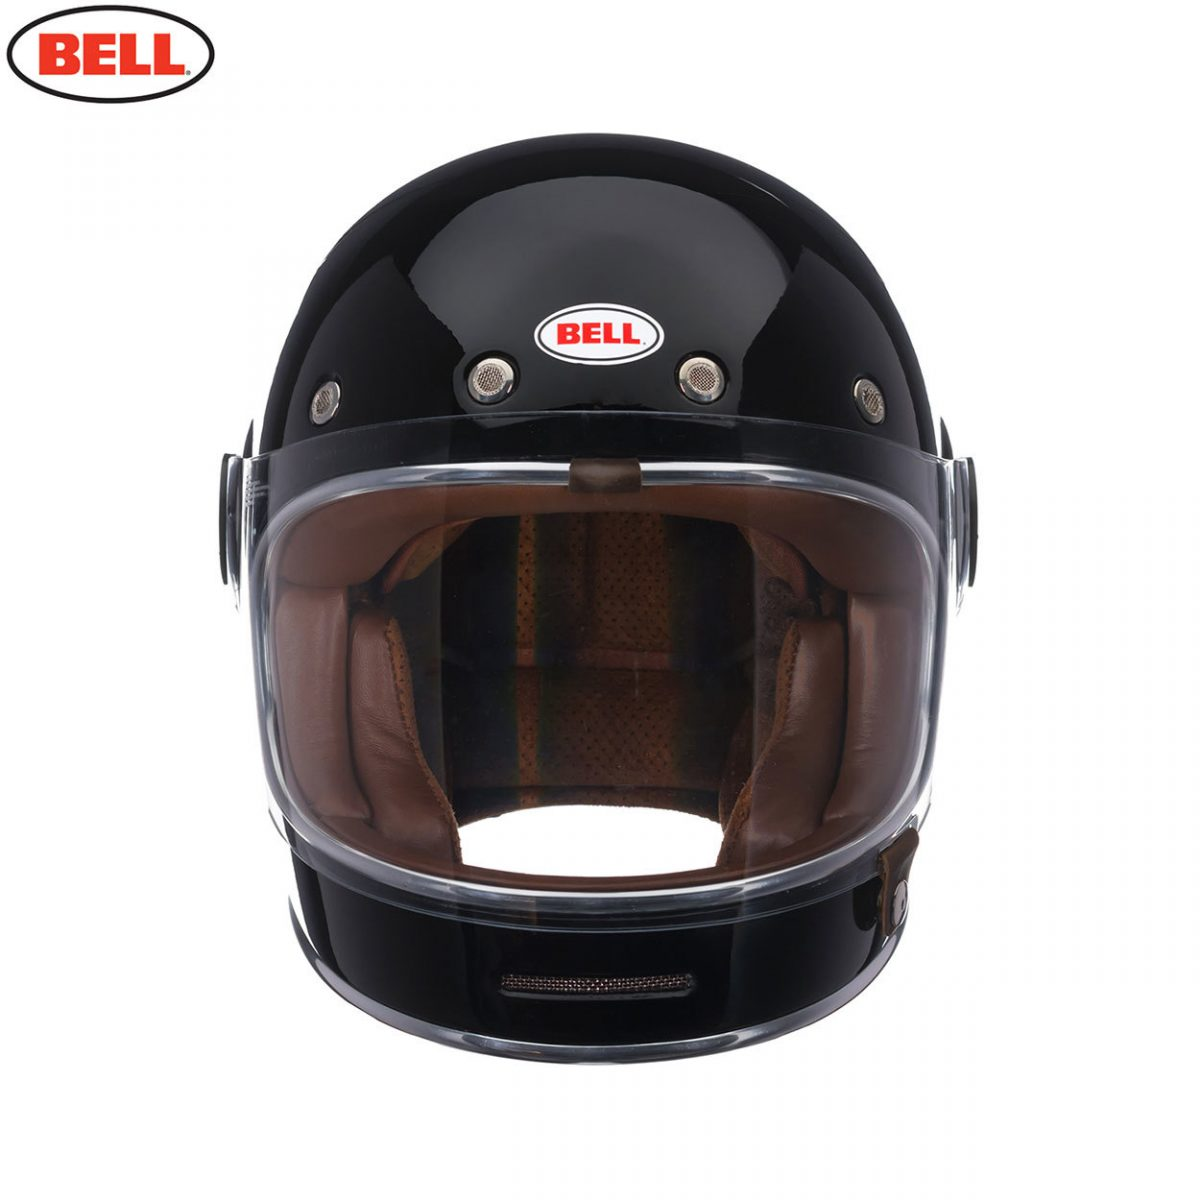 Bell Cruiser Bullitt Adult Helmet Solid Black